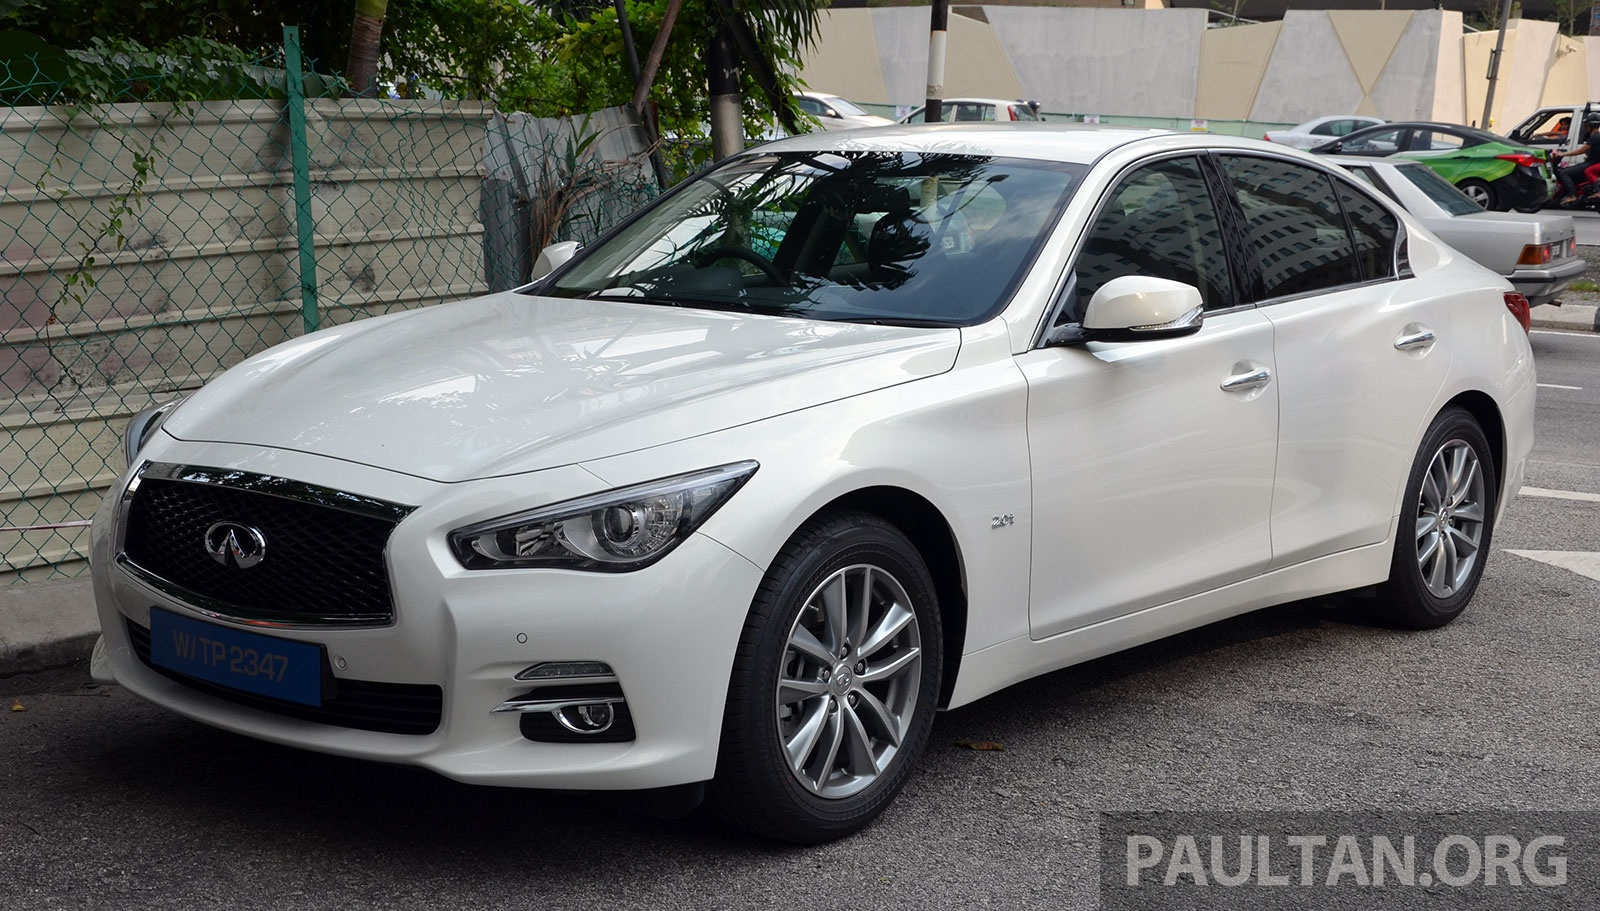 infiniti q50 now in showroom merc turbo rm249k image 262363. Black Bedroom Furniture Sets. Home Design Ideas